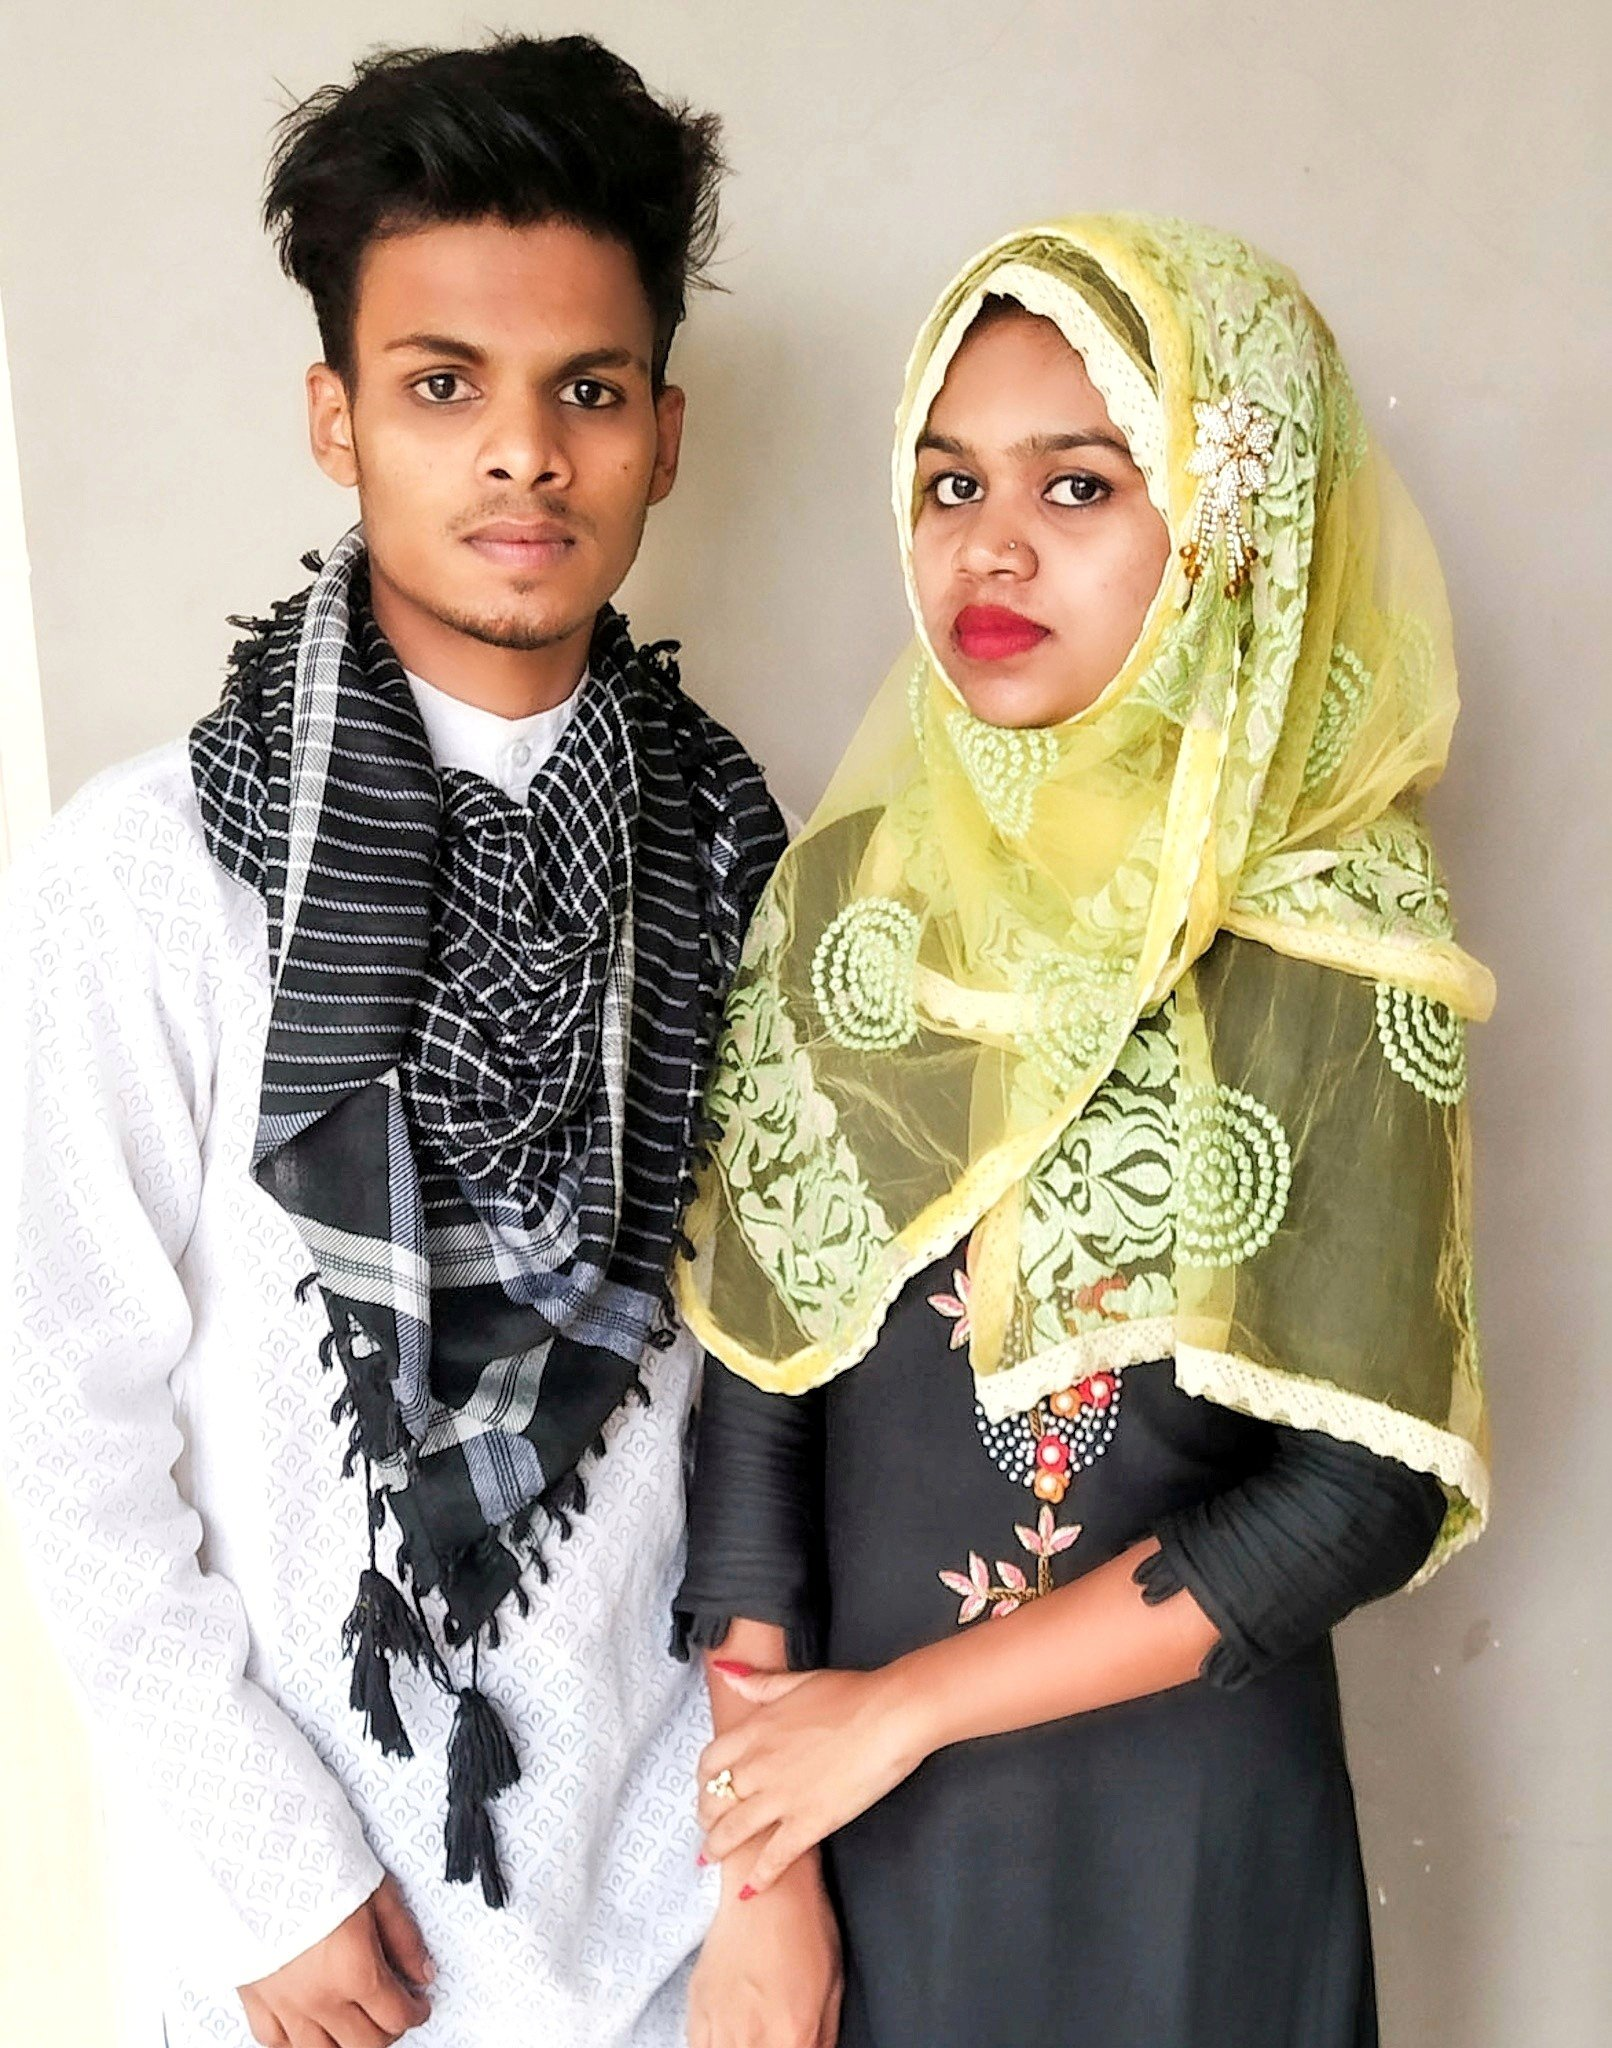 A young Indian couple